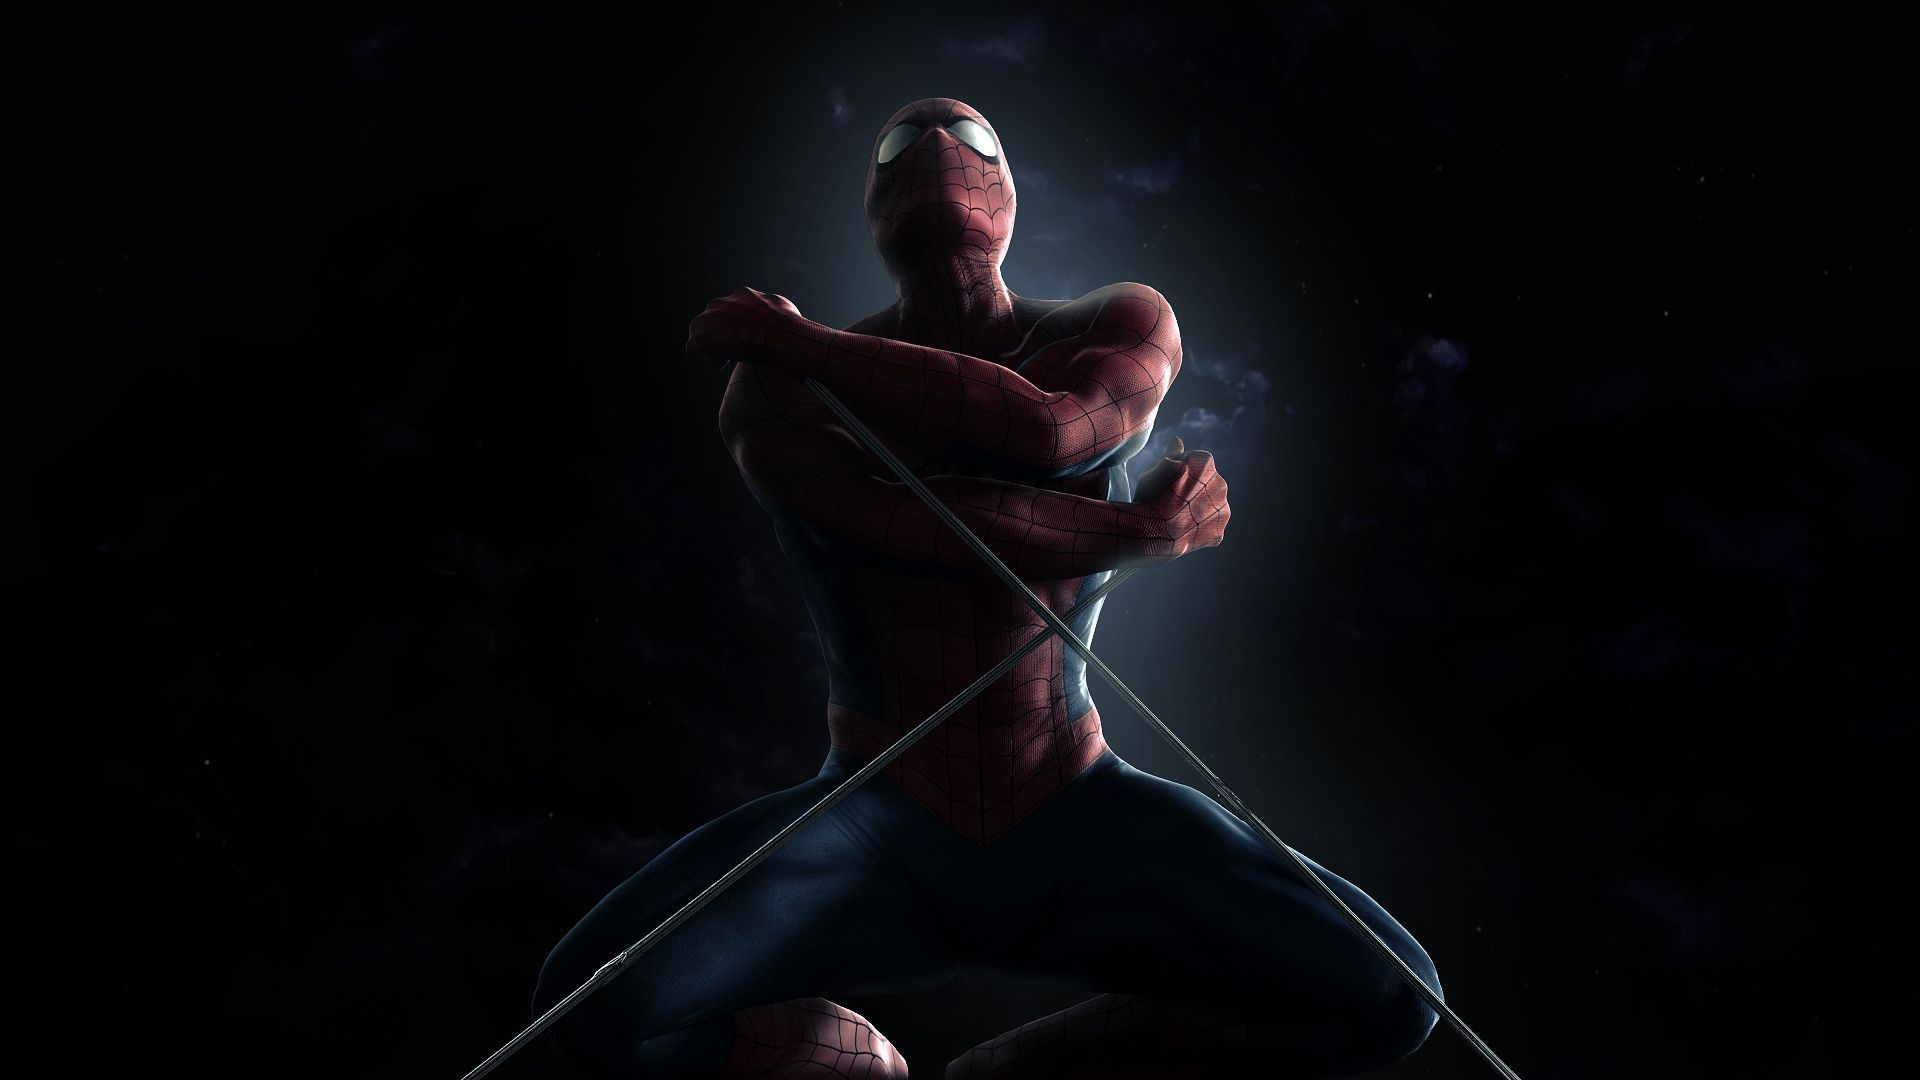 SpiderMan HD Wallpapers Backgrounds Wallpaper 1920x1080